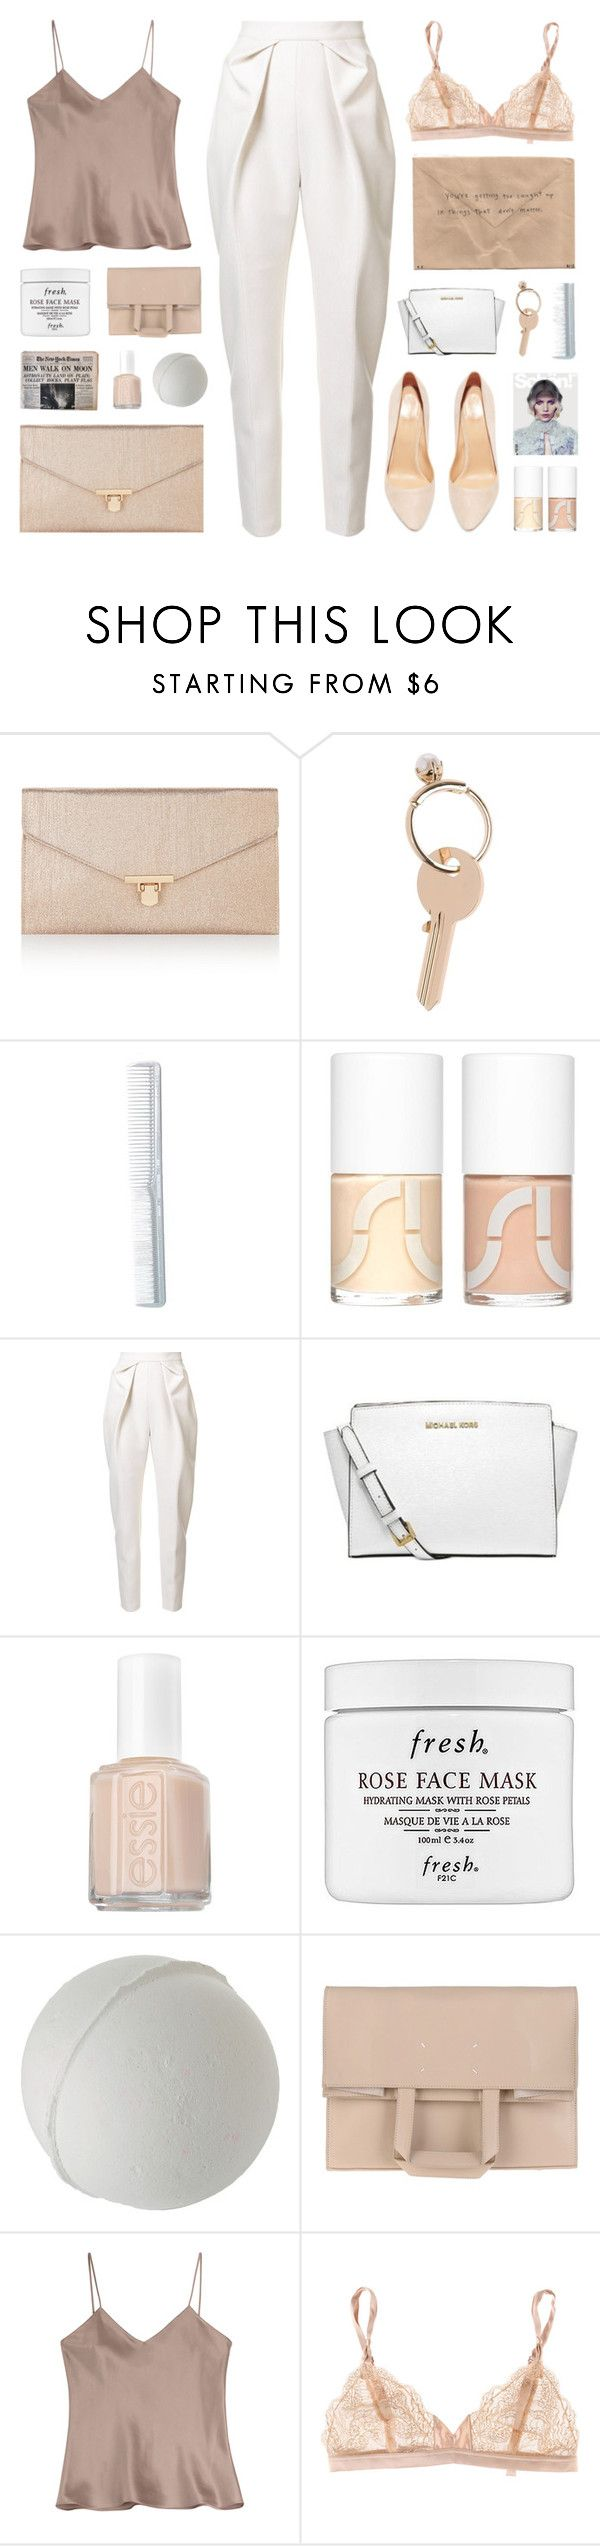 """""""Special Video { in desc. }"""" by alexis-belaruano ❤ liked on Polyvore featuring Accessorize, Maison Margiela, Uslu Airlines, Delpozo, MICHAEL Michael Kors, Essie, Fresh, Etro, STELLA McCARTNEY and Sergio Rossi"""